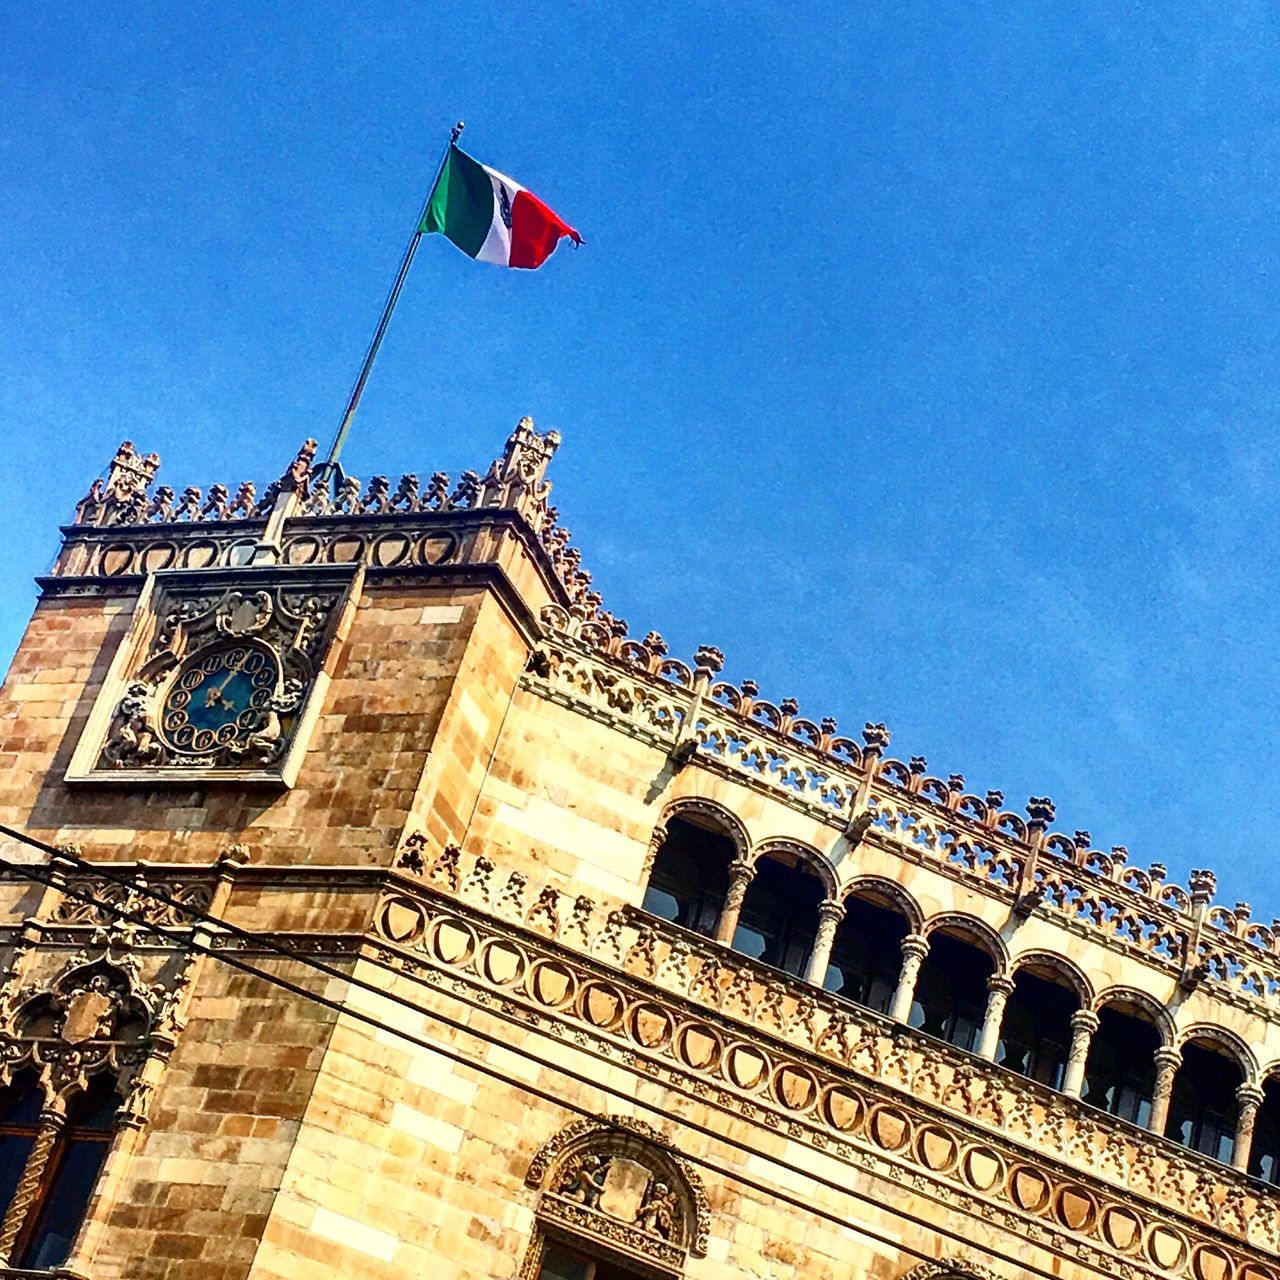 Beautiful stock photos of mexican flag, Cuauhtémoc, Meixco, Mexico, architectural Feature